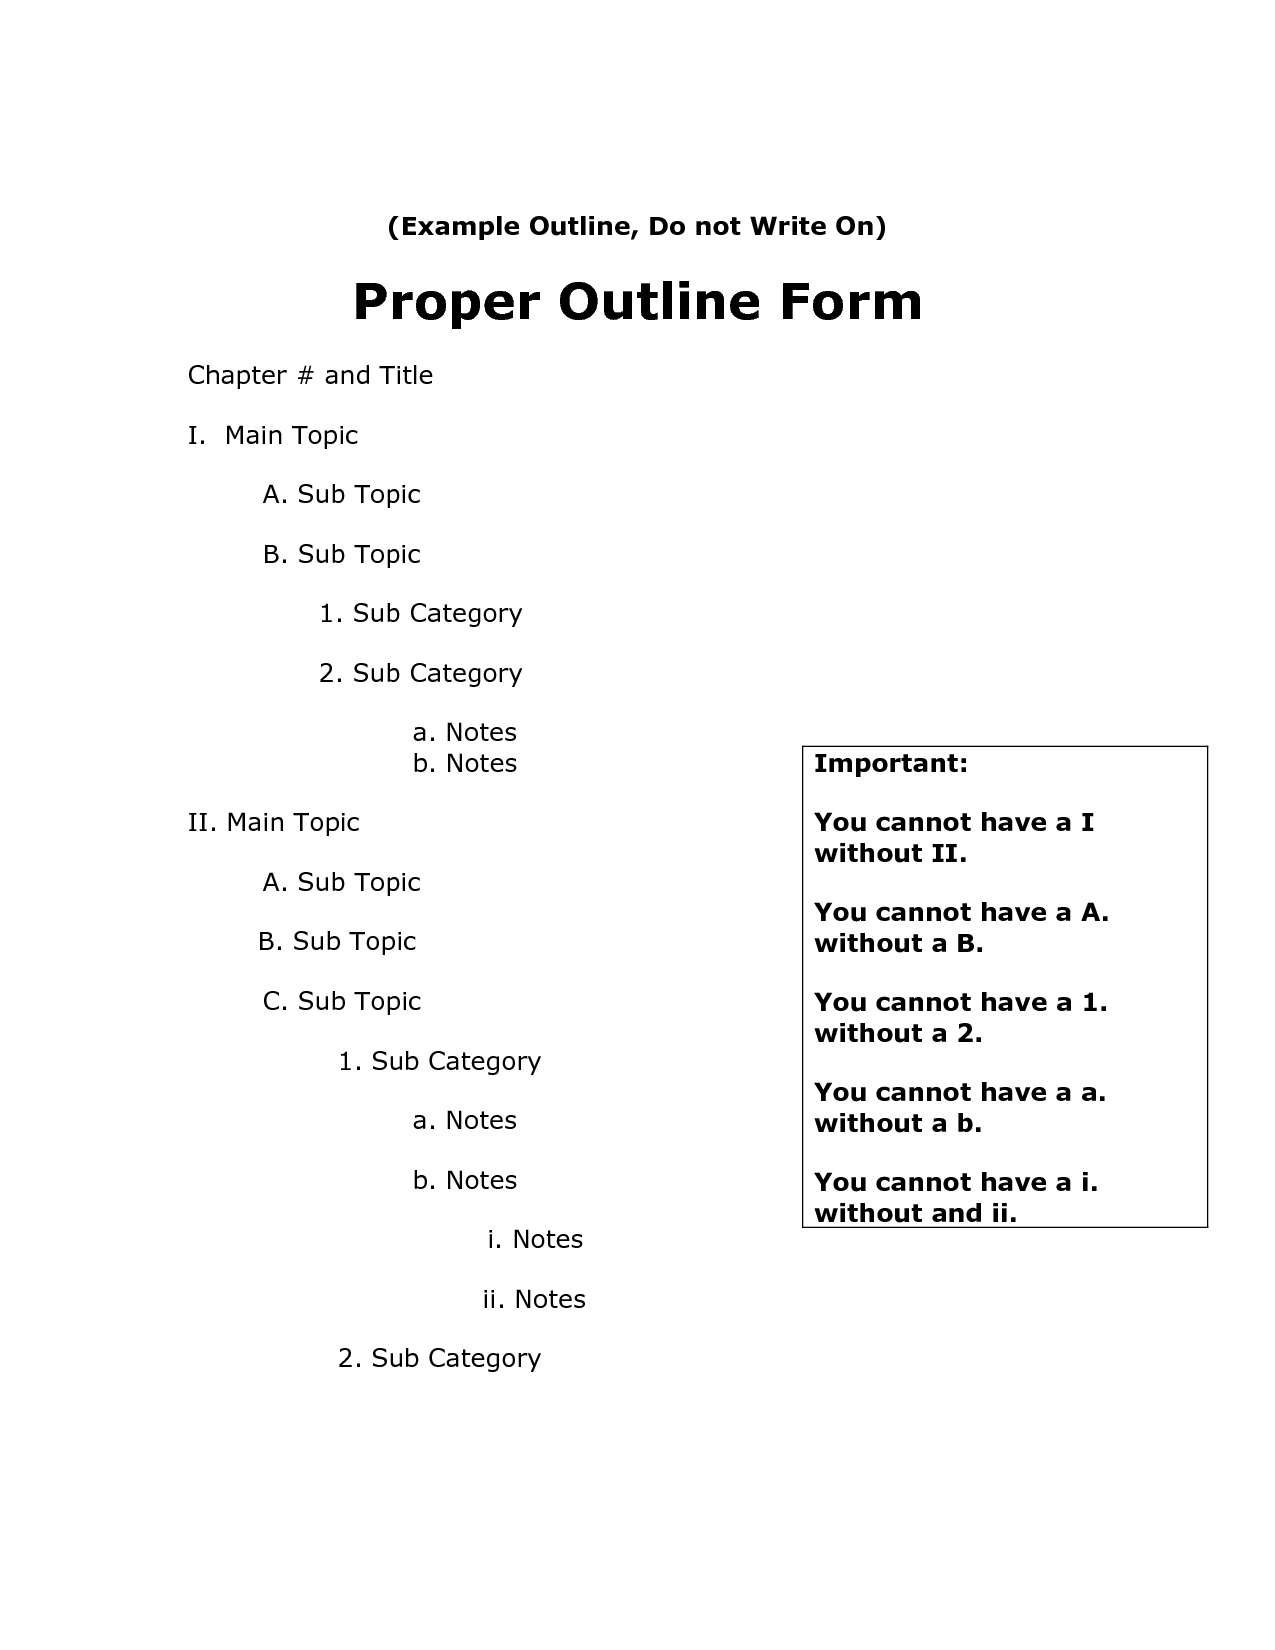 How to Write a College Paper   How to Structure an Outline for a